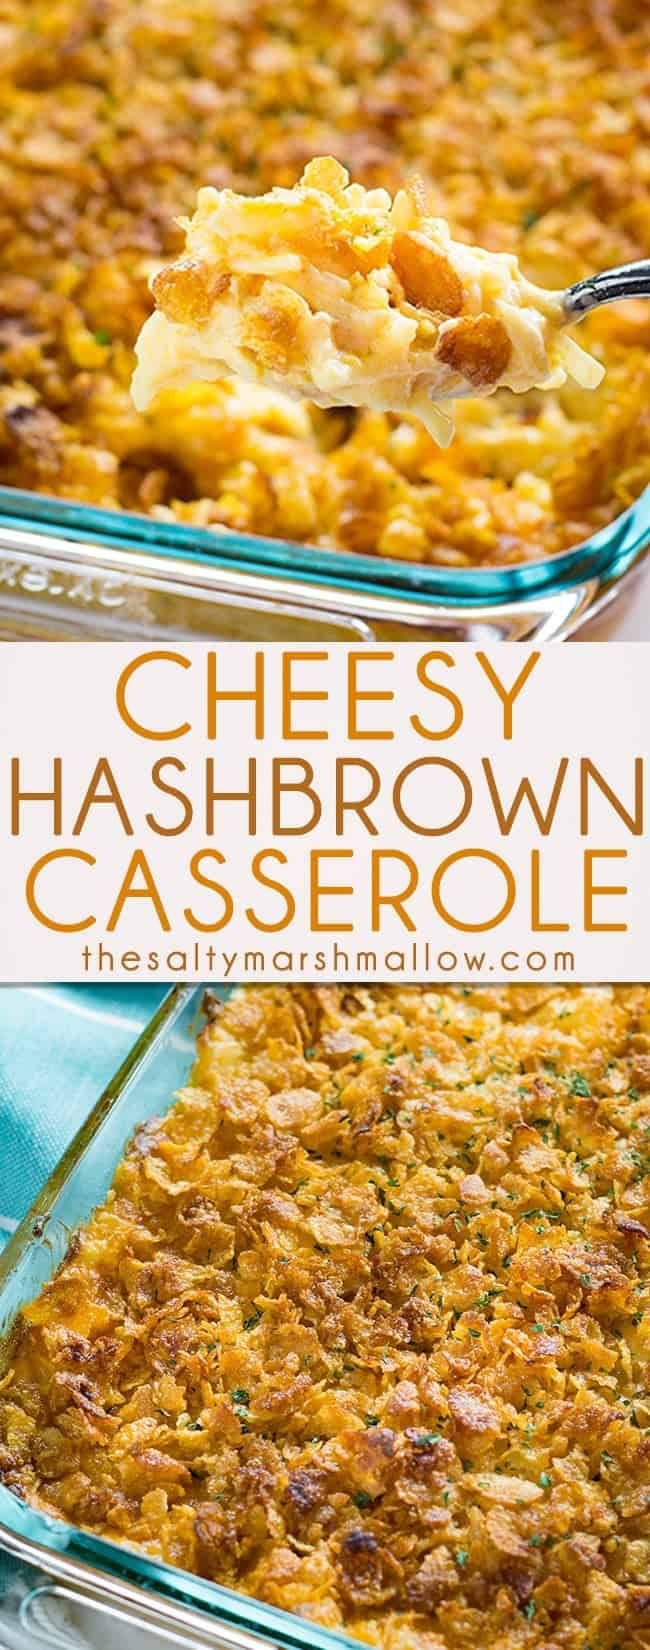 Cheesy Hash Brown Casserole Cheesy Hashbrown Casserole is a classic holiday and potluck side that is cheesy, creamy, and easy to make! This casserole is filled with cheese, sour cream, hash brown potatoes and a tasty cornflake topping!